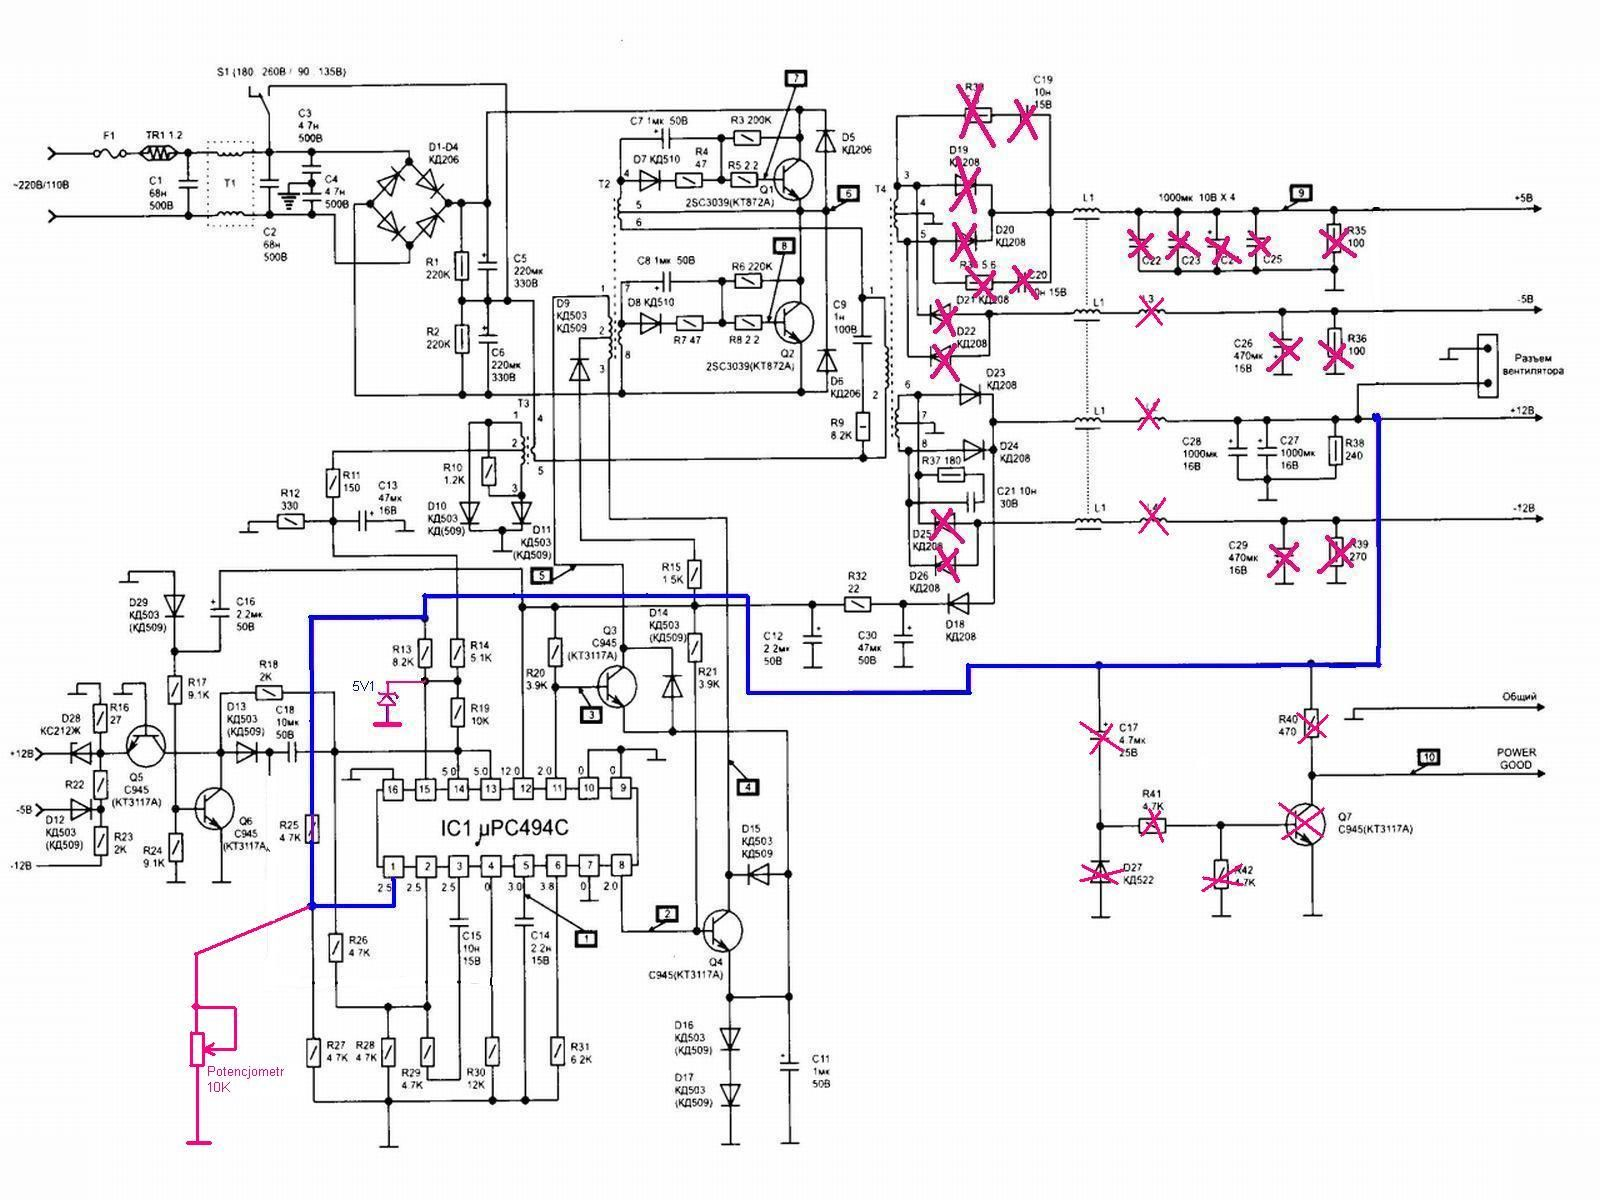 Smps Secondary Transformer Output 24v 5v Atx Tesla Coil Driver On Induction Heater Schematic Diagram